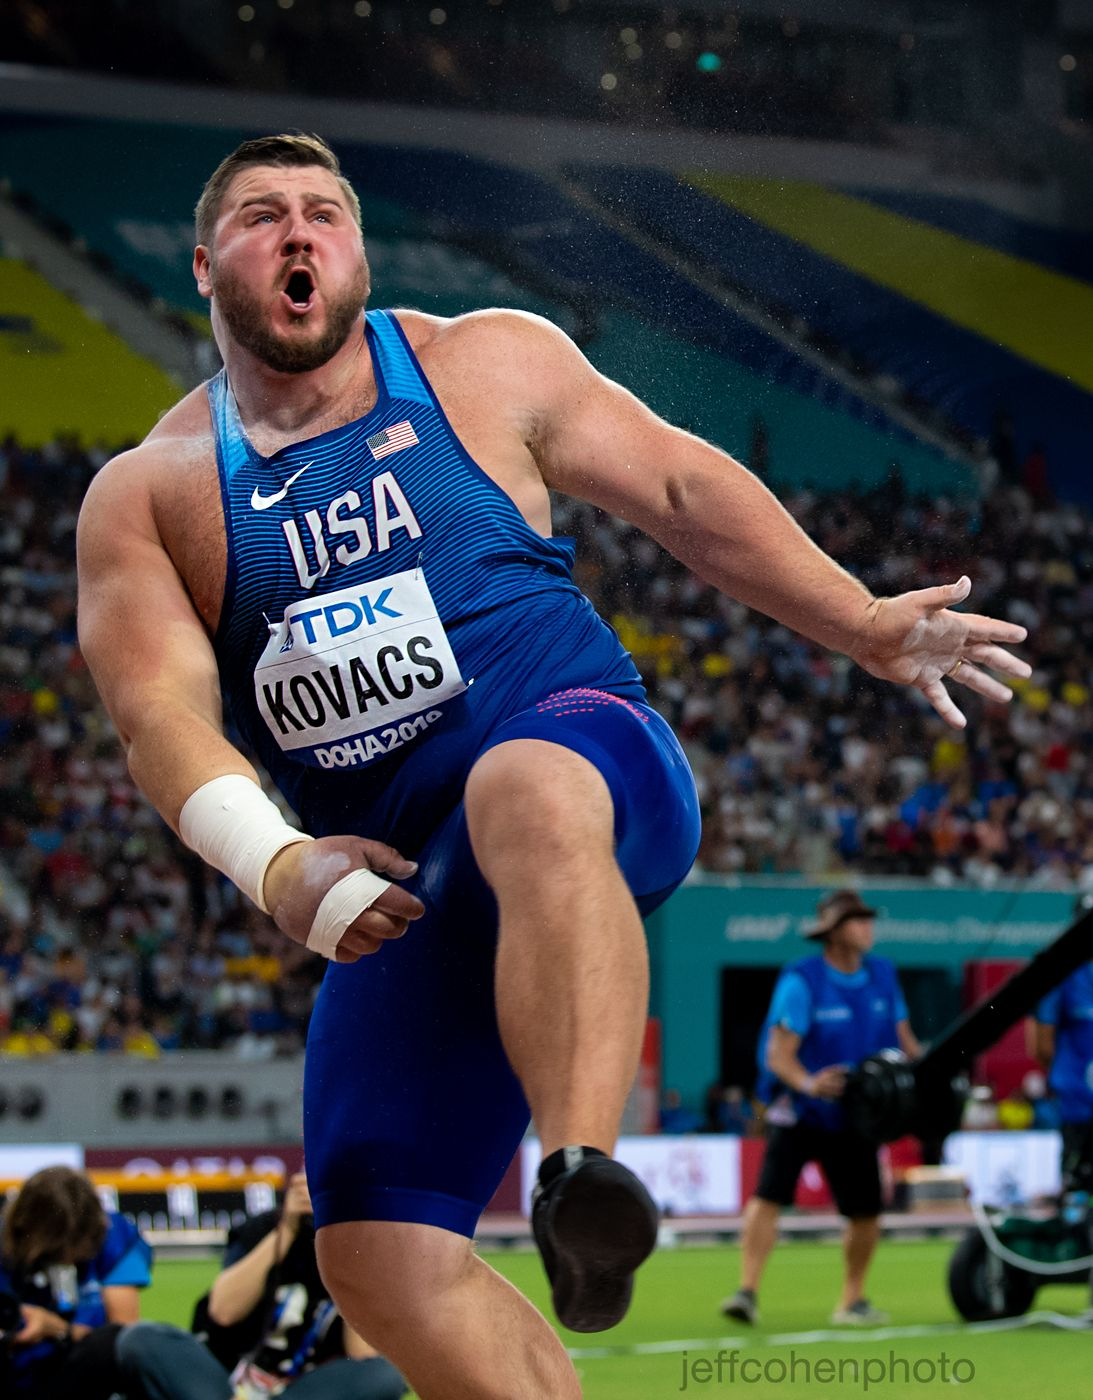 2019-DOHA-WC-day-9-2808--kovacs-spm-finals-22.91m-jeff-cohen-photo--web.jpg